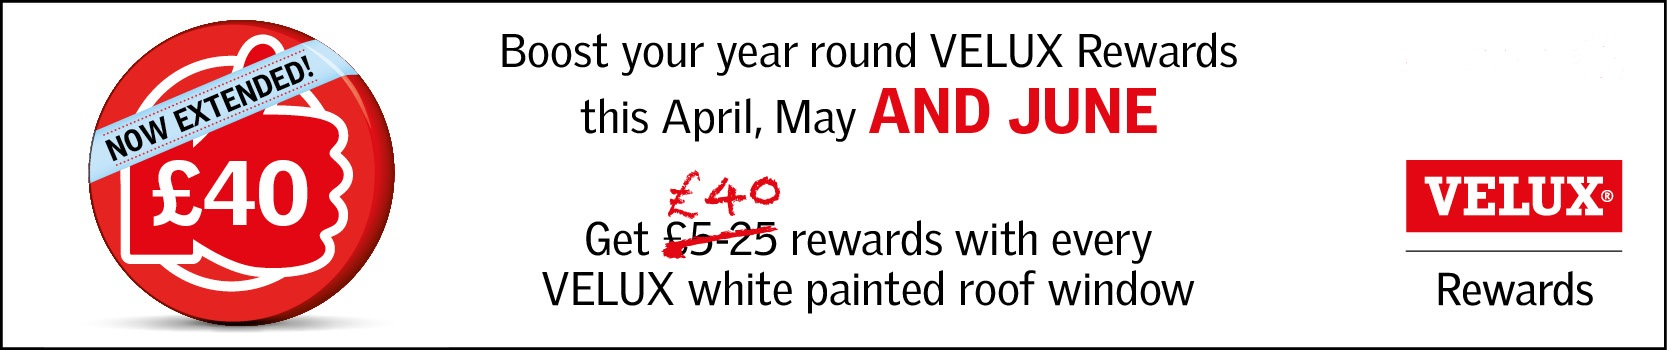 Velux rewards now extended for April, May and June